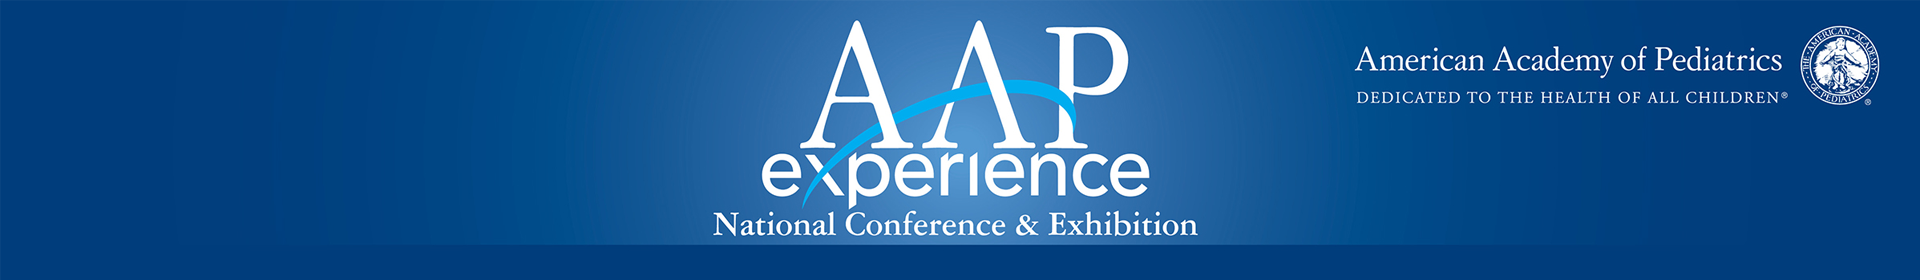 2021 AAP National Conference Session Proposal Submission Event Banner